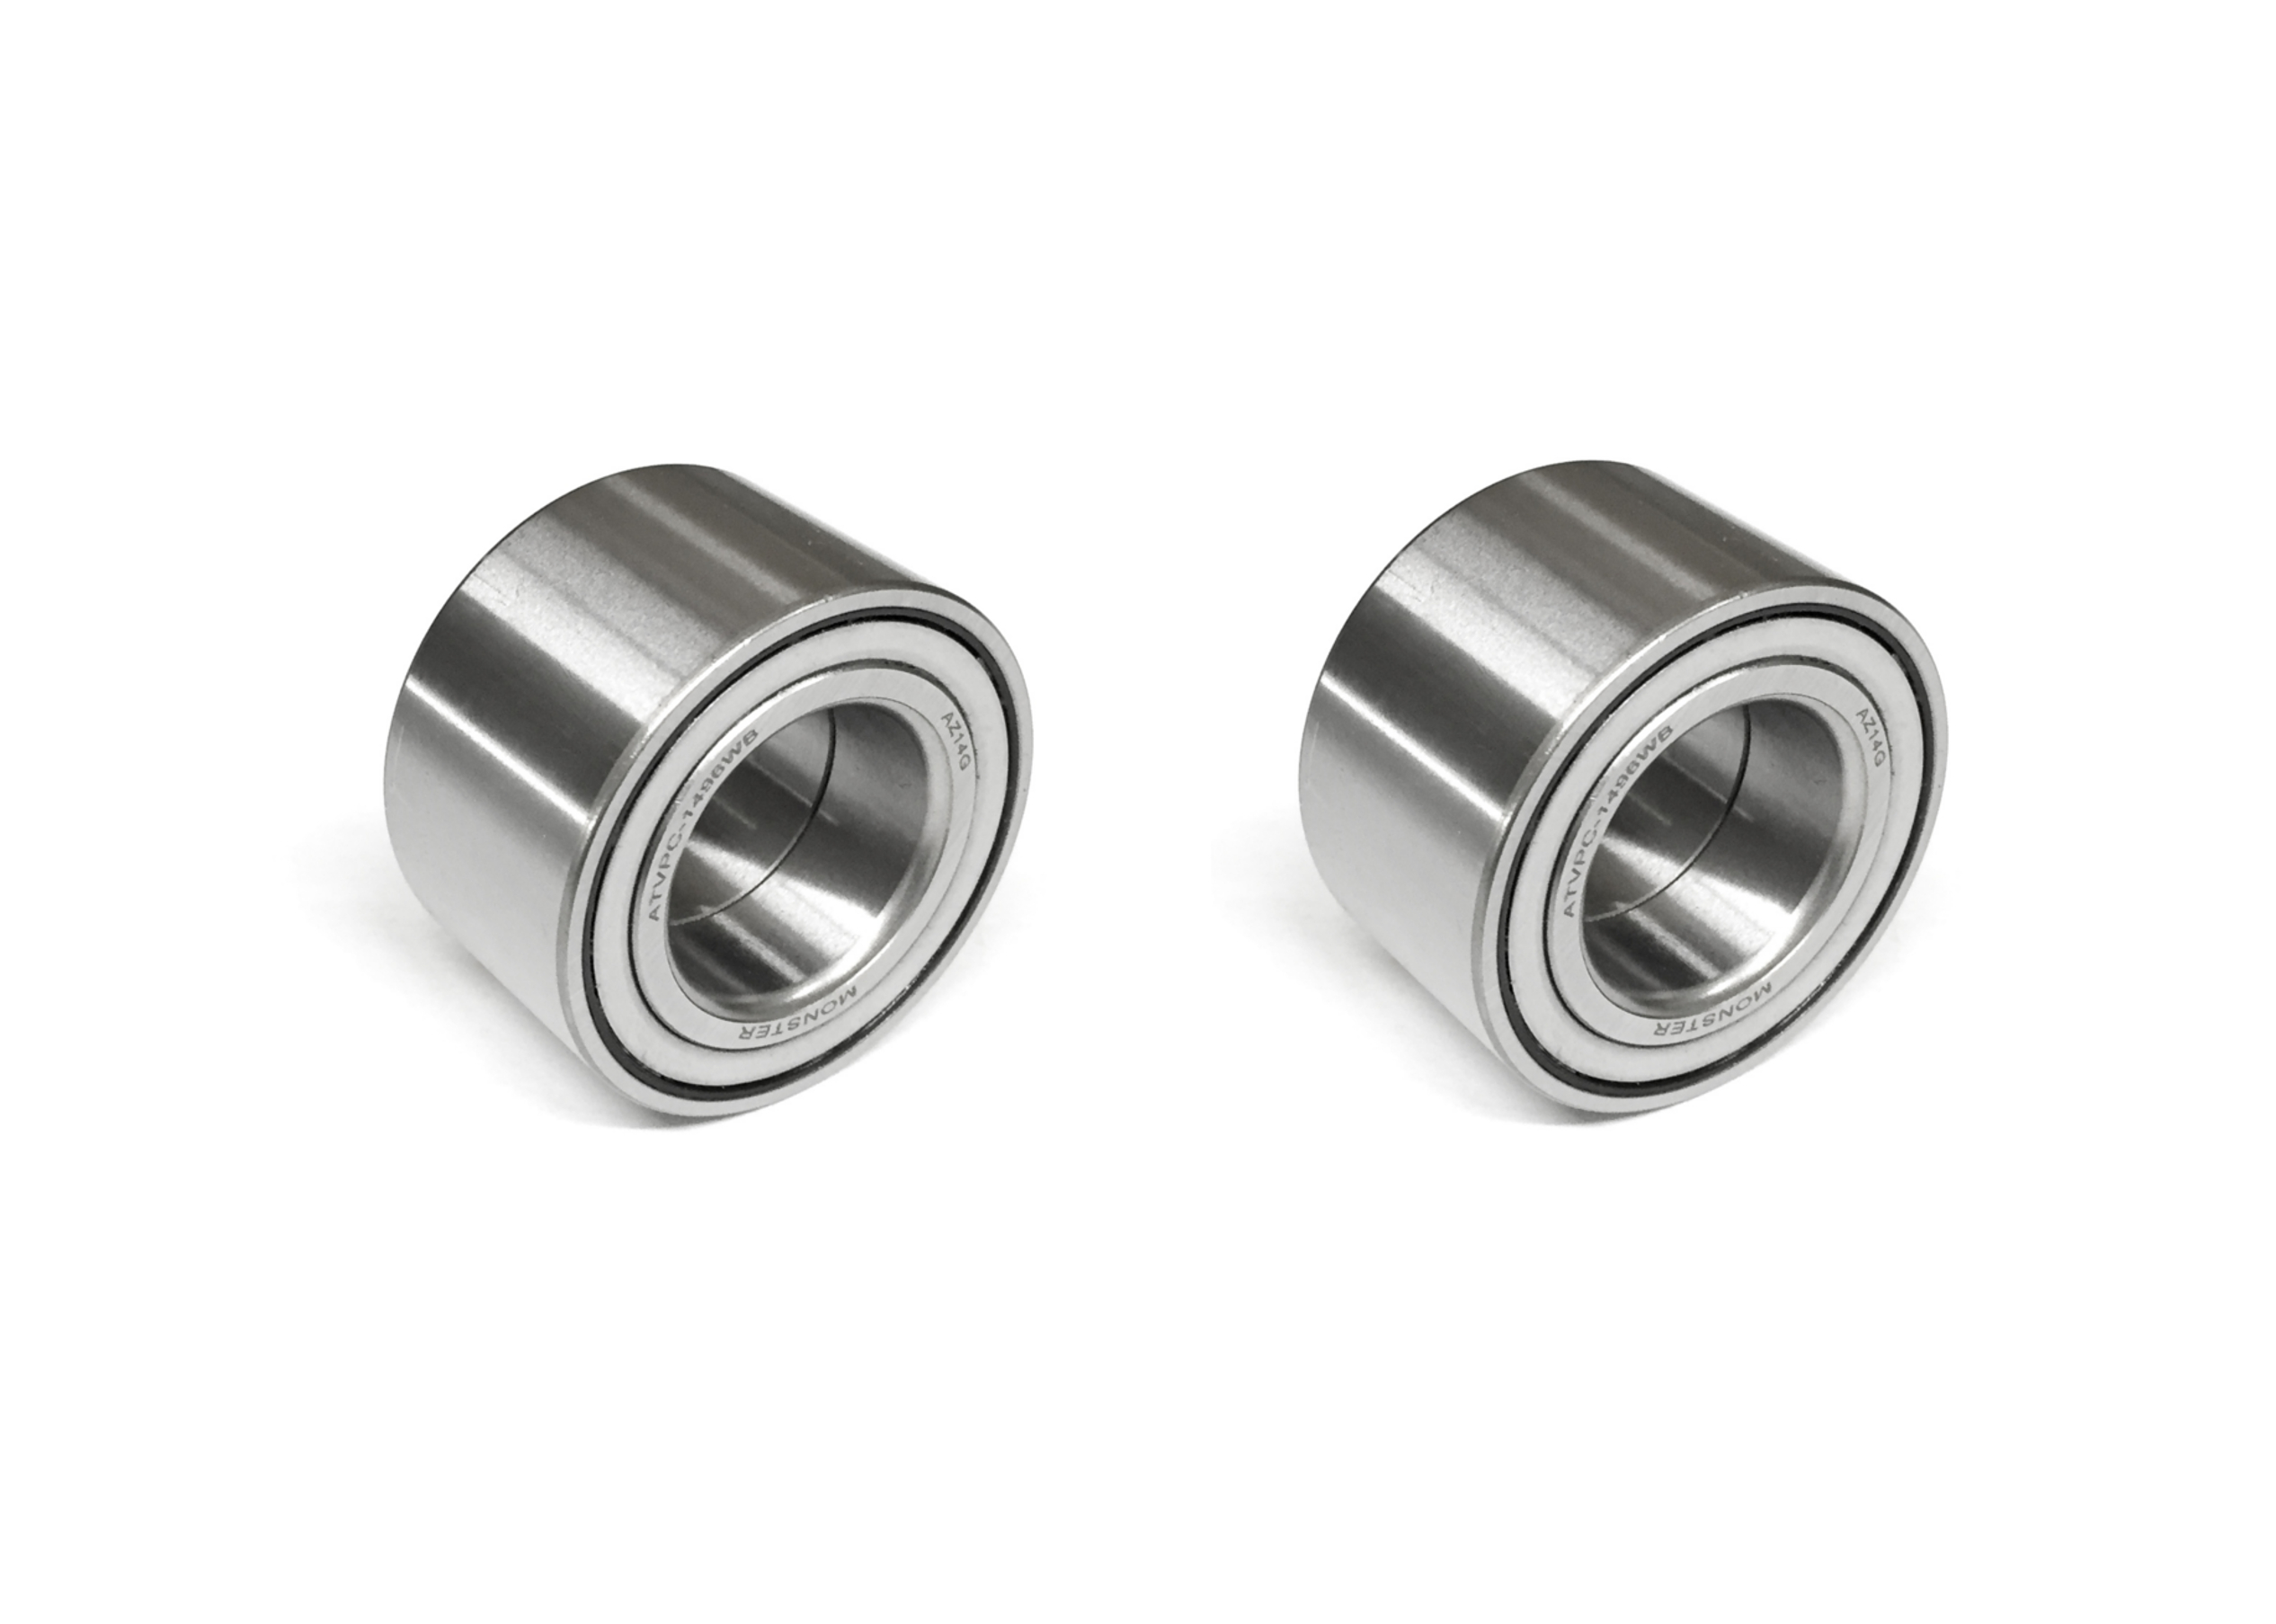 4 FRONT REAR WHEEL BALL BEARING For ARCTIC CAT WILDCAT TRAIL SPORT 700 2014-2018